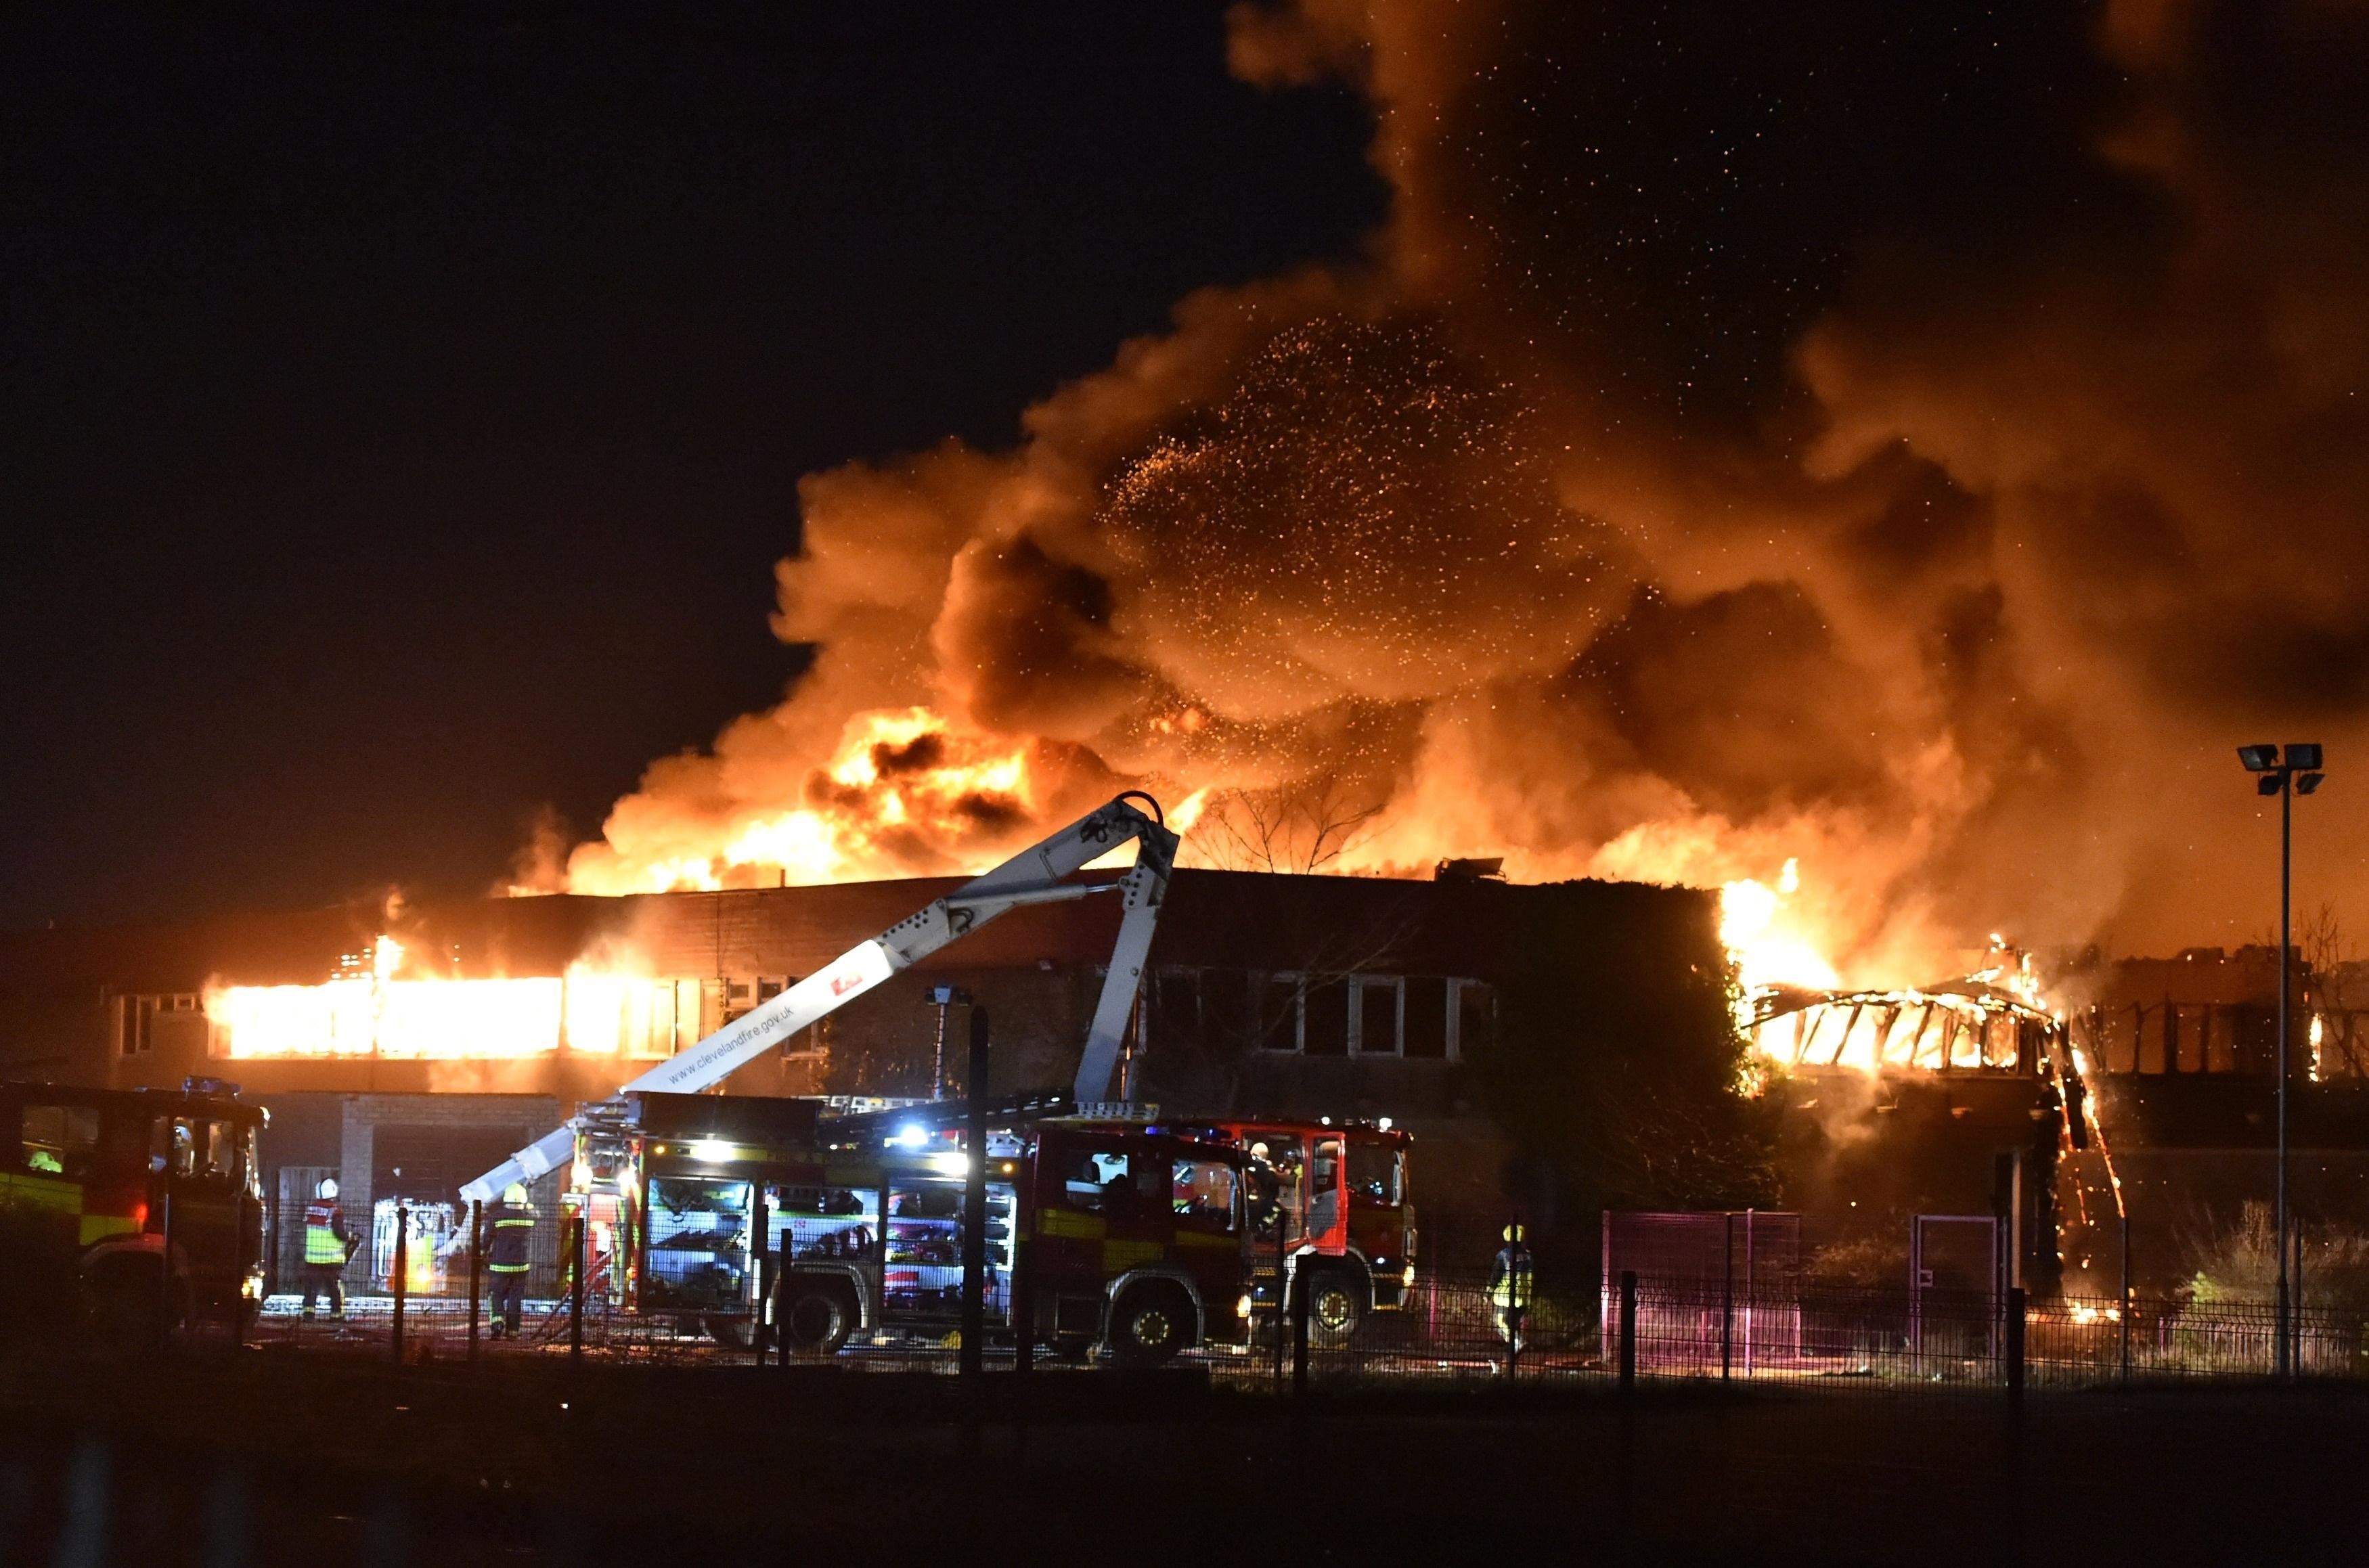 Massive fire breaks out at former school in Teesside with residents told to 'keep windows shut'